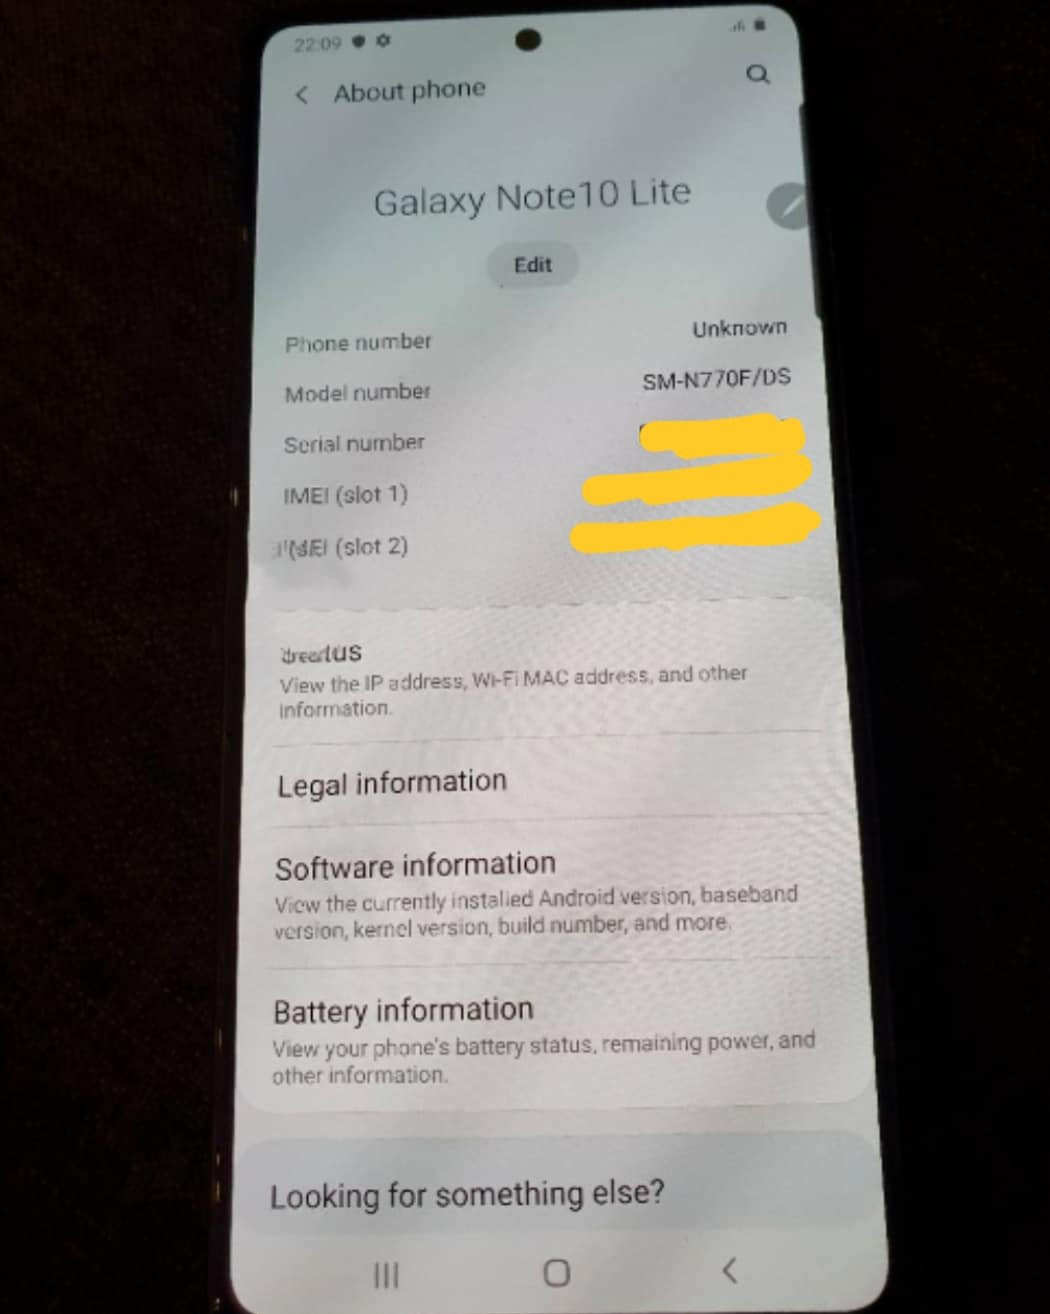 Upcoming Samsung Galaxy S10 Lite will be better than any current flagships